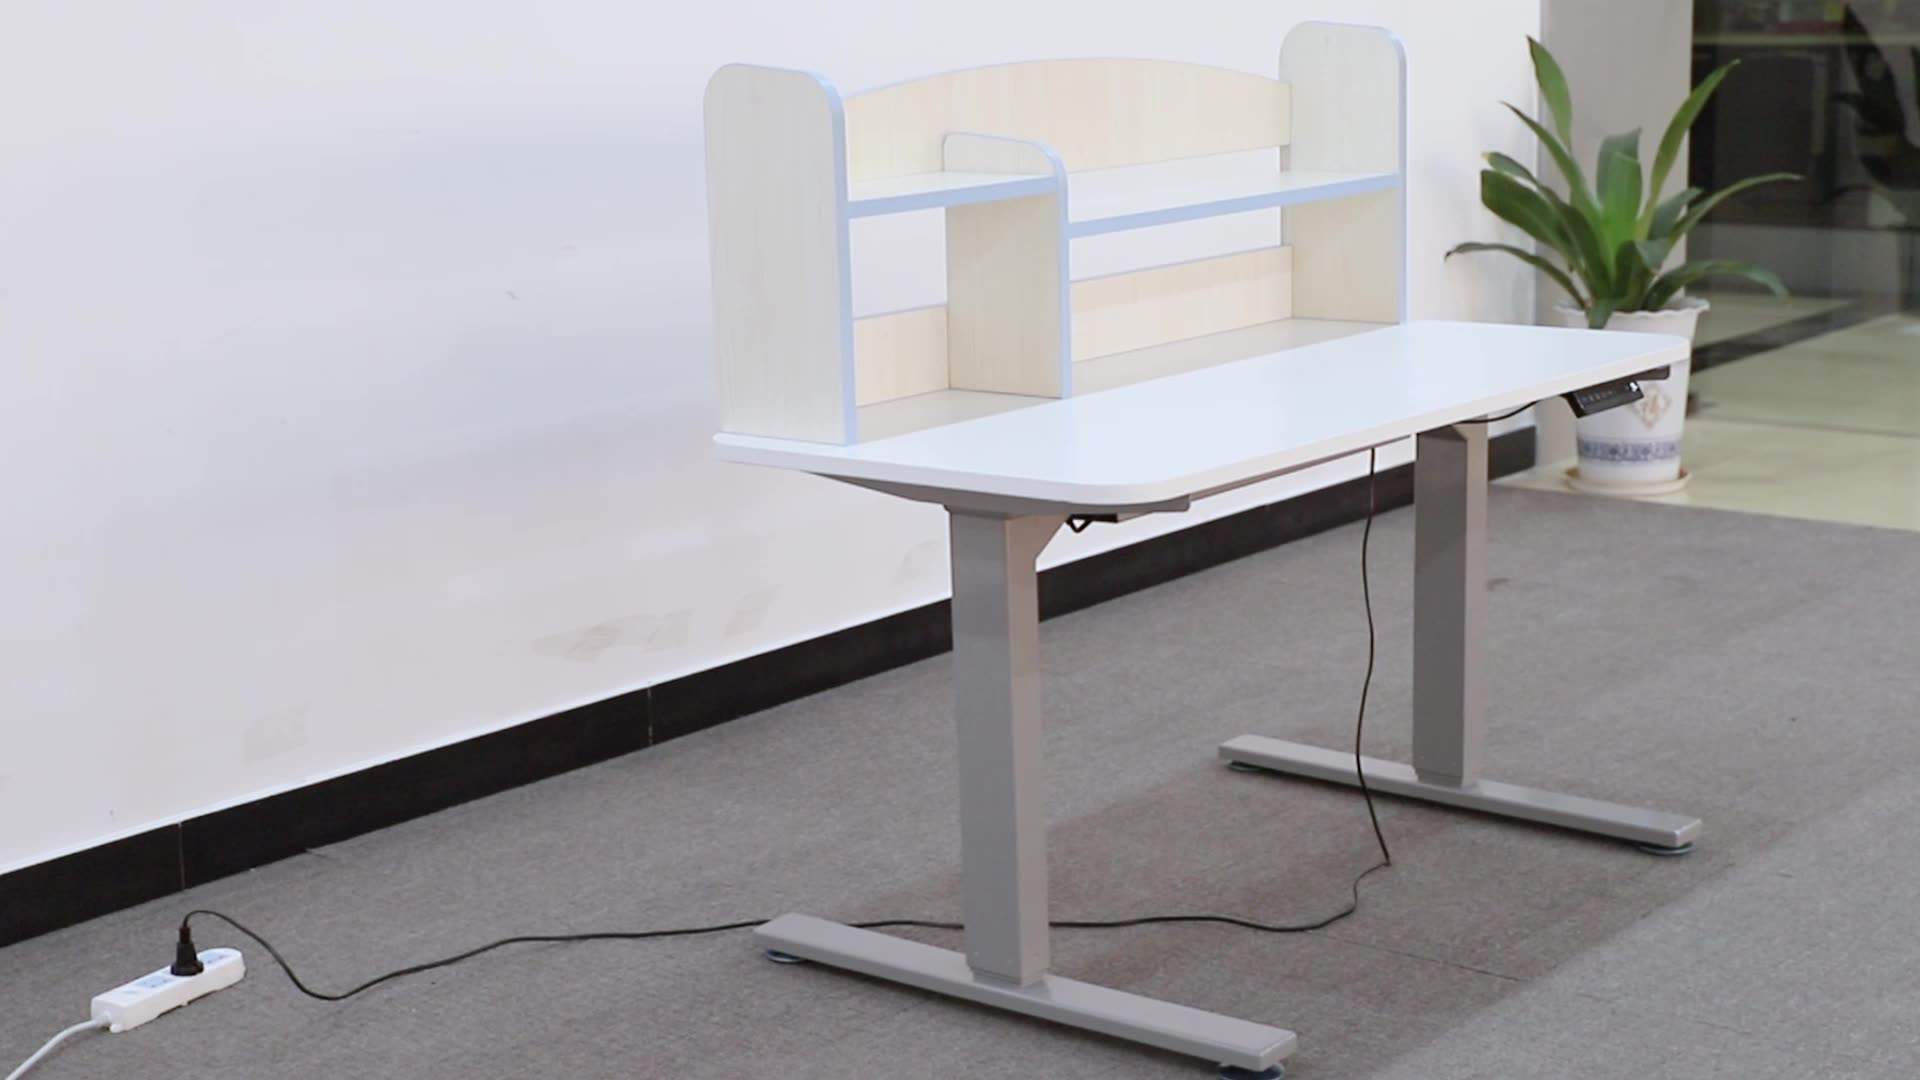 Two Motor Standing Up And Down Desk Height Adjustable Tables For Children